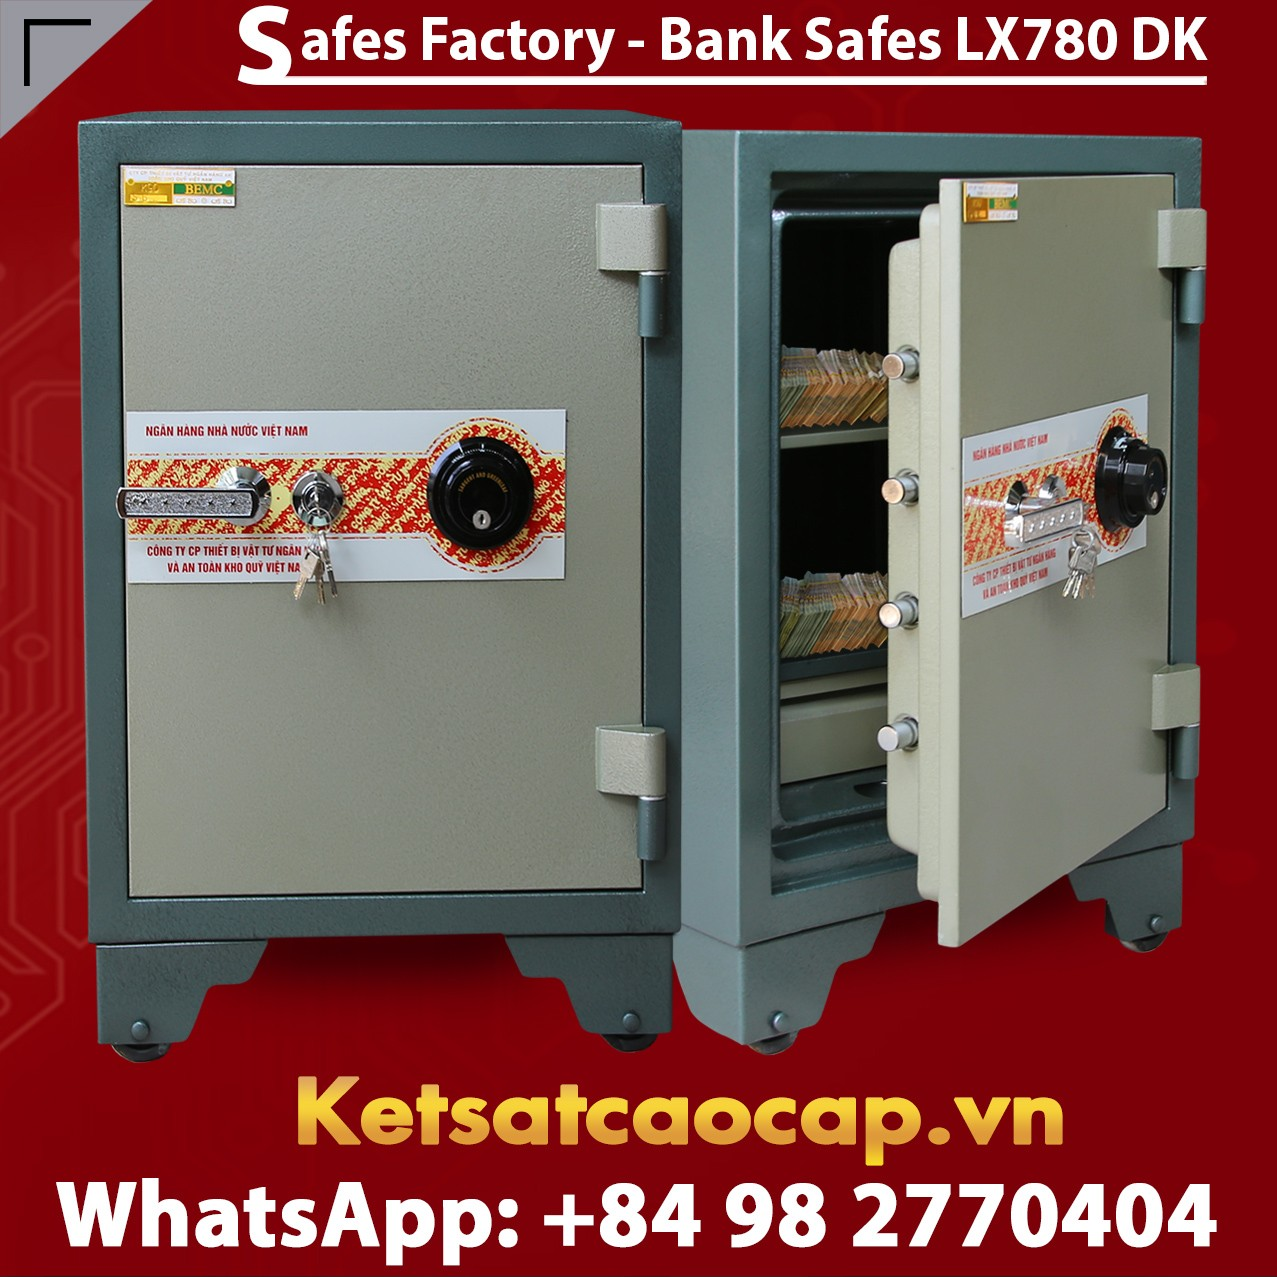 Bank Safes Box Wholesale Suppliers